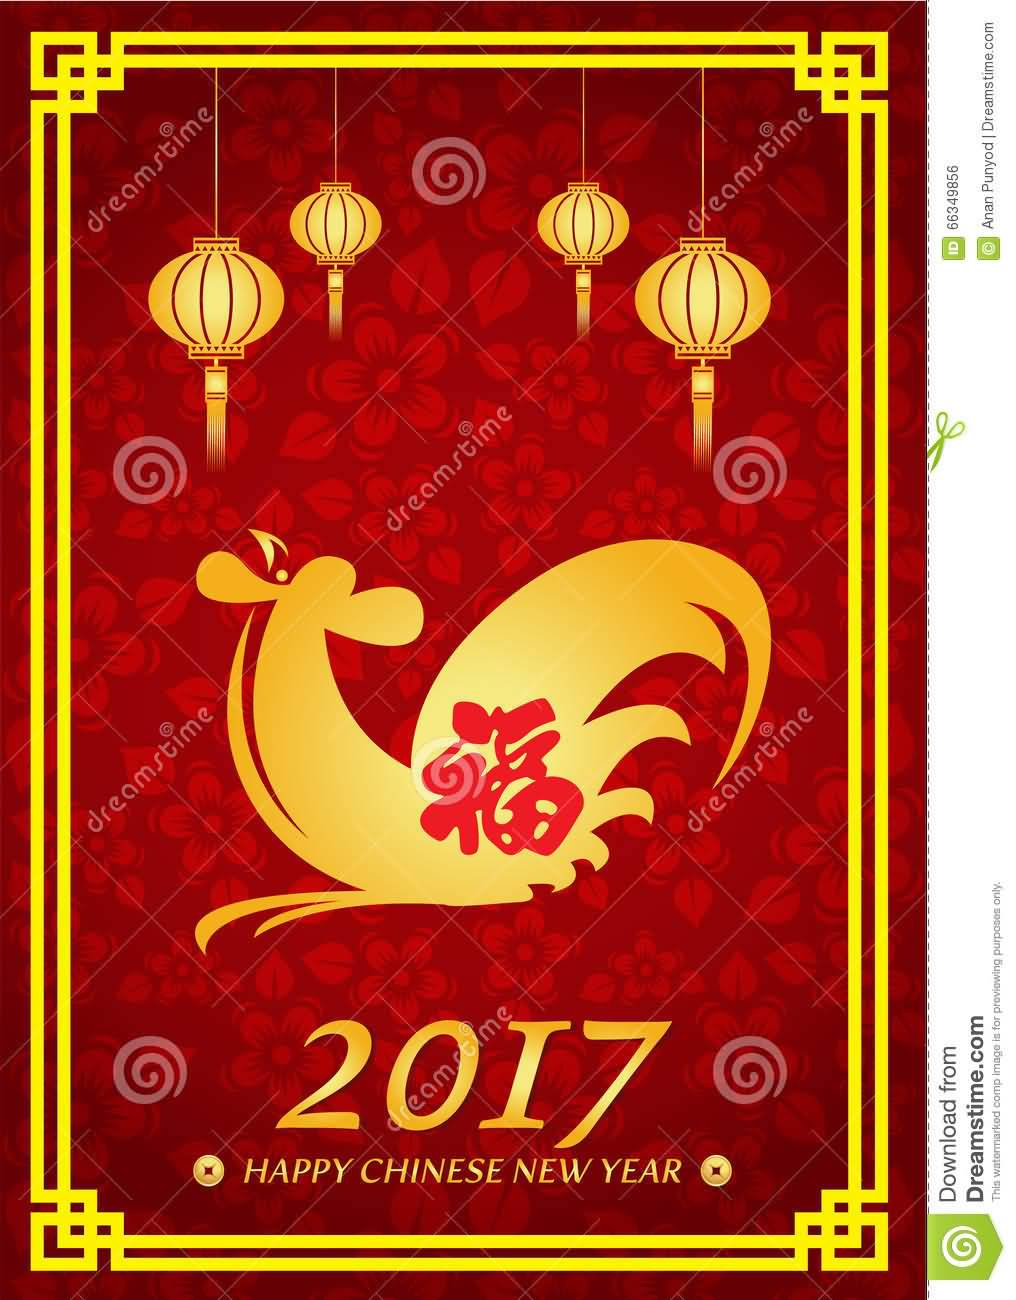 New year 2017 greeting pictures year of rooster happy chinese new year - Happy Chinese New Year 2017 Lanterns And Golden Rooster Greeting Card